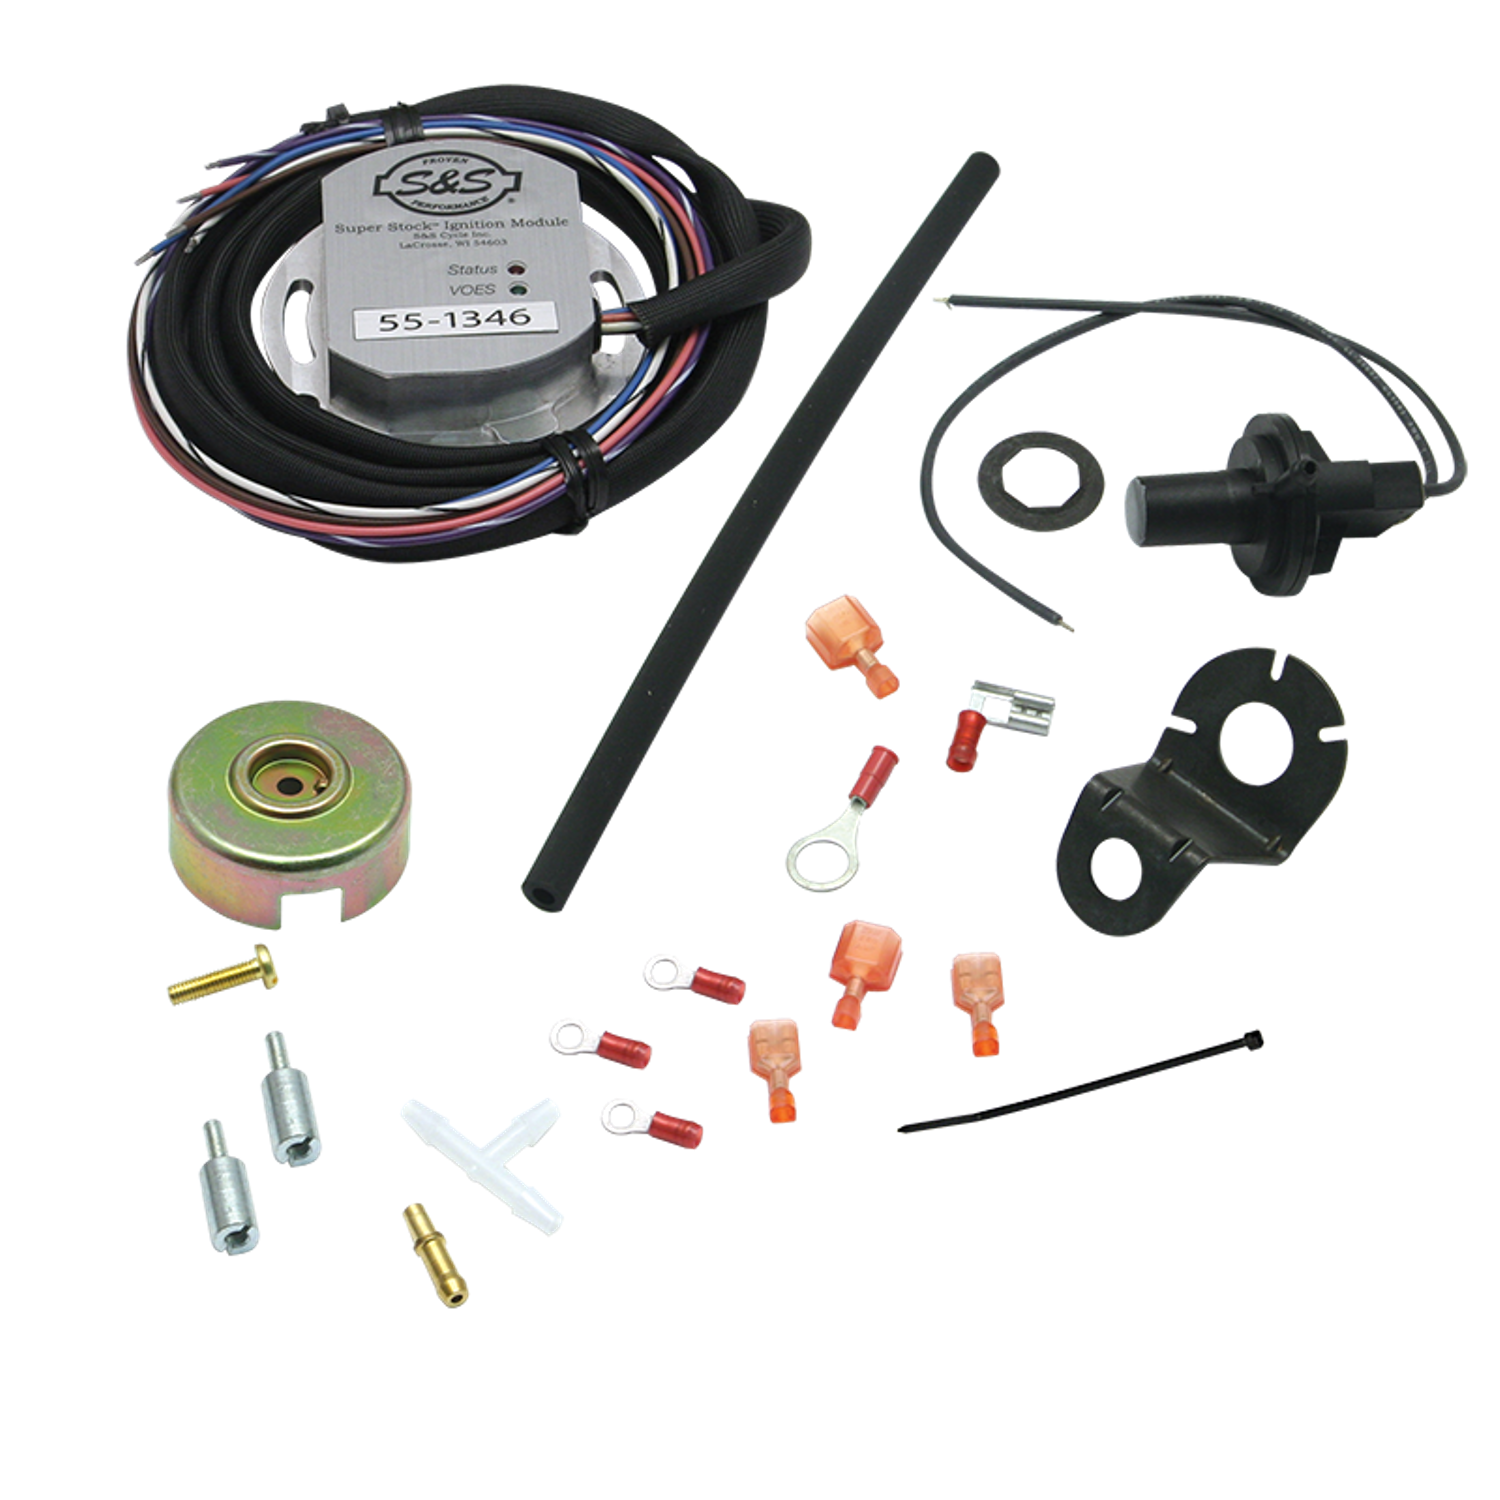 Super Stock Ignition Kit For Hd Evolution 111 117 And 124 Ss Module Wiring Harness 1984 99